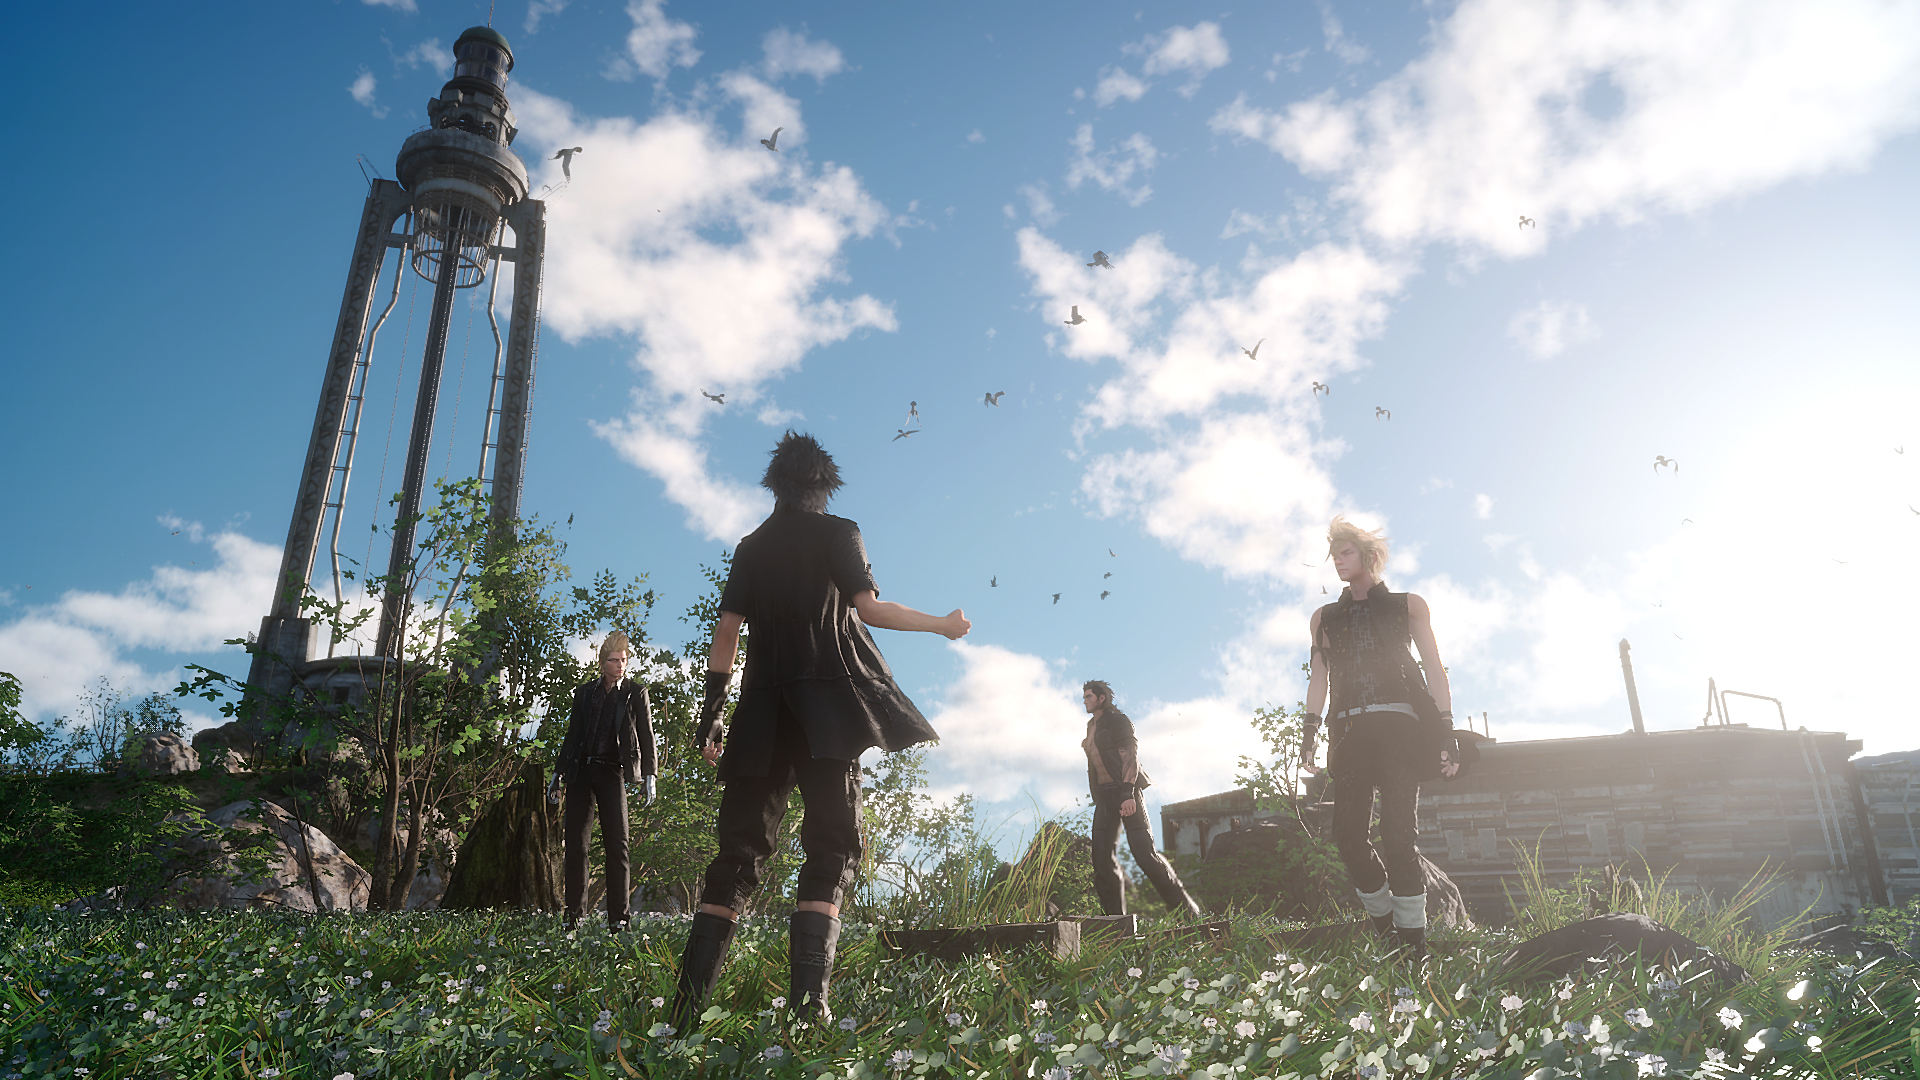 Final Fantasy 15 Is Pivotal To Franchises Future Success, Says Dev 2931167 final fantasy xv 2015 08 31 15 001